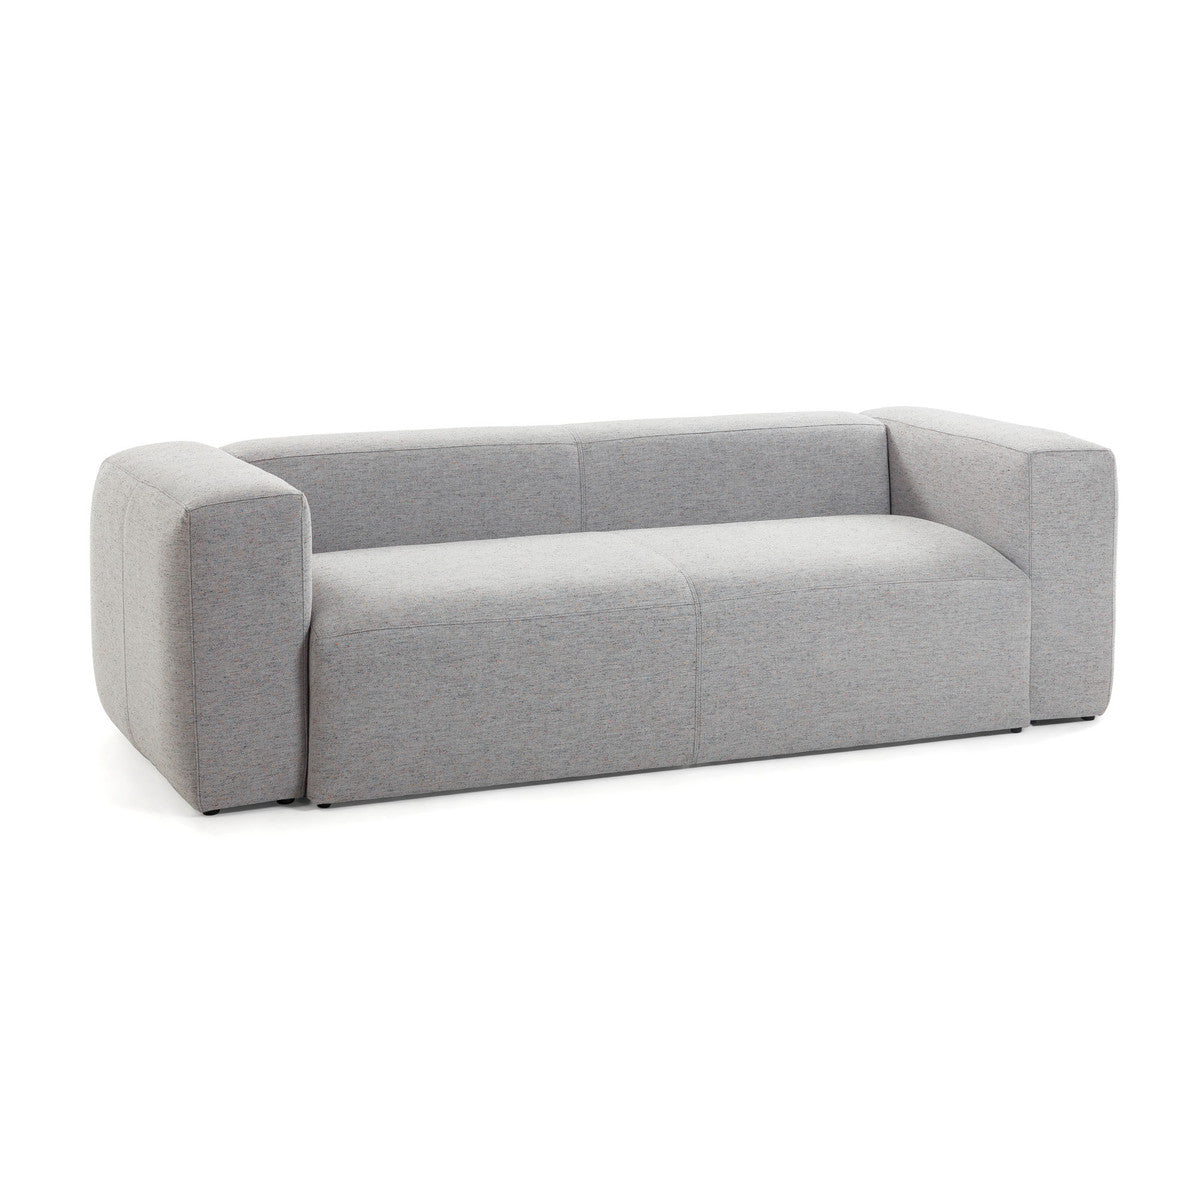 Cube 2 Seat Sofa Light Grey Fabric